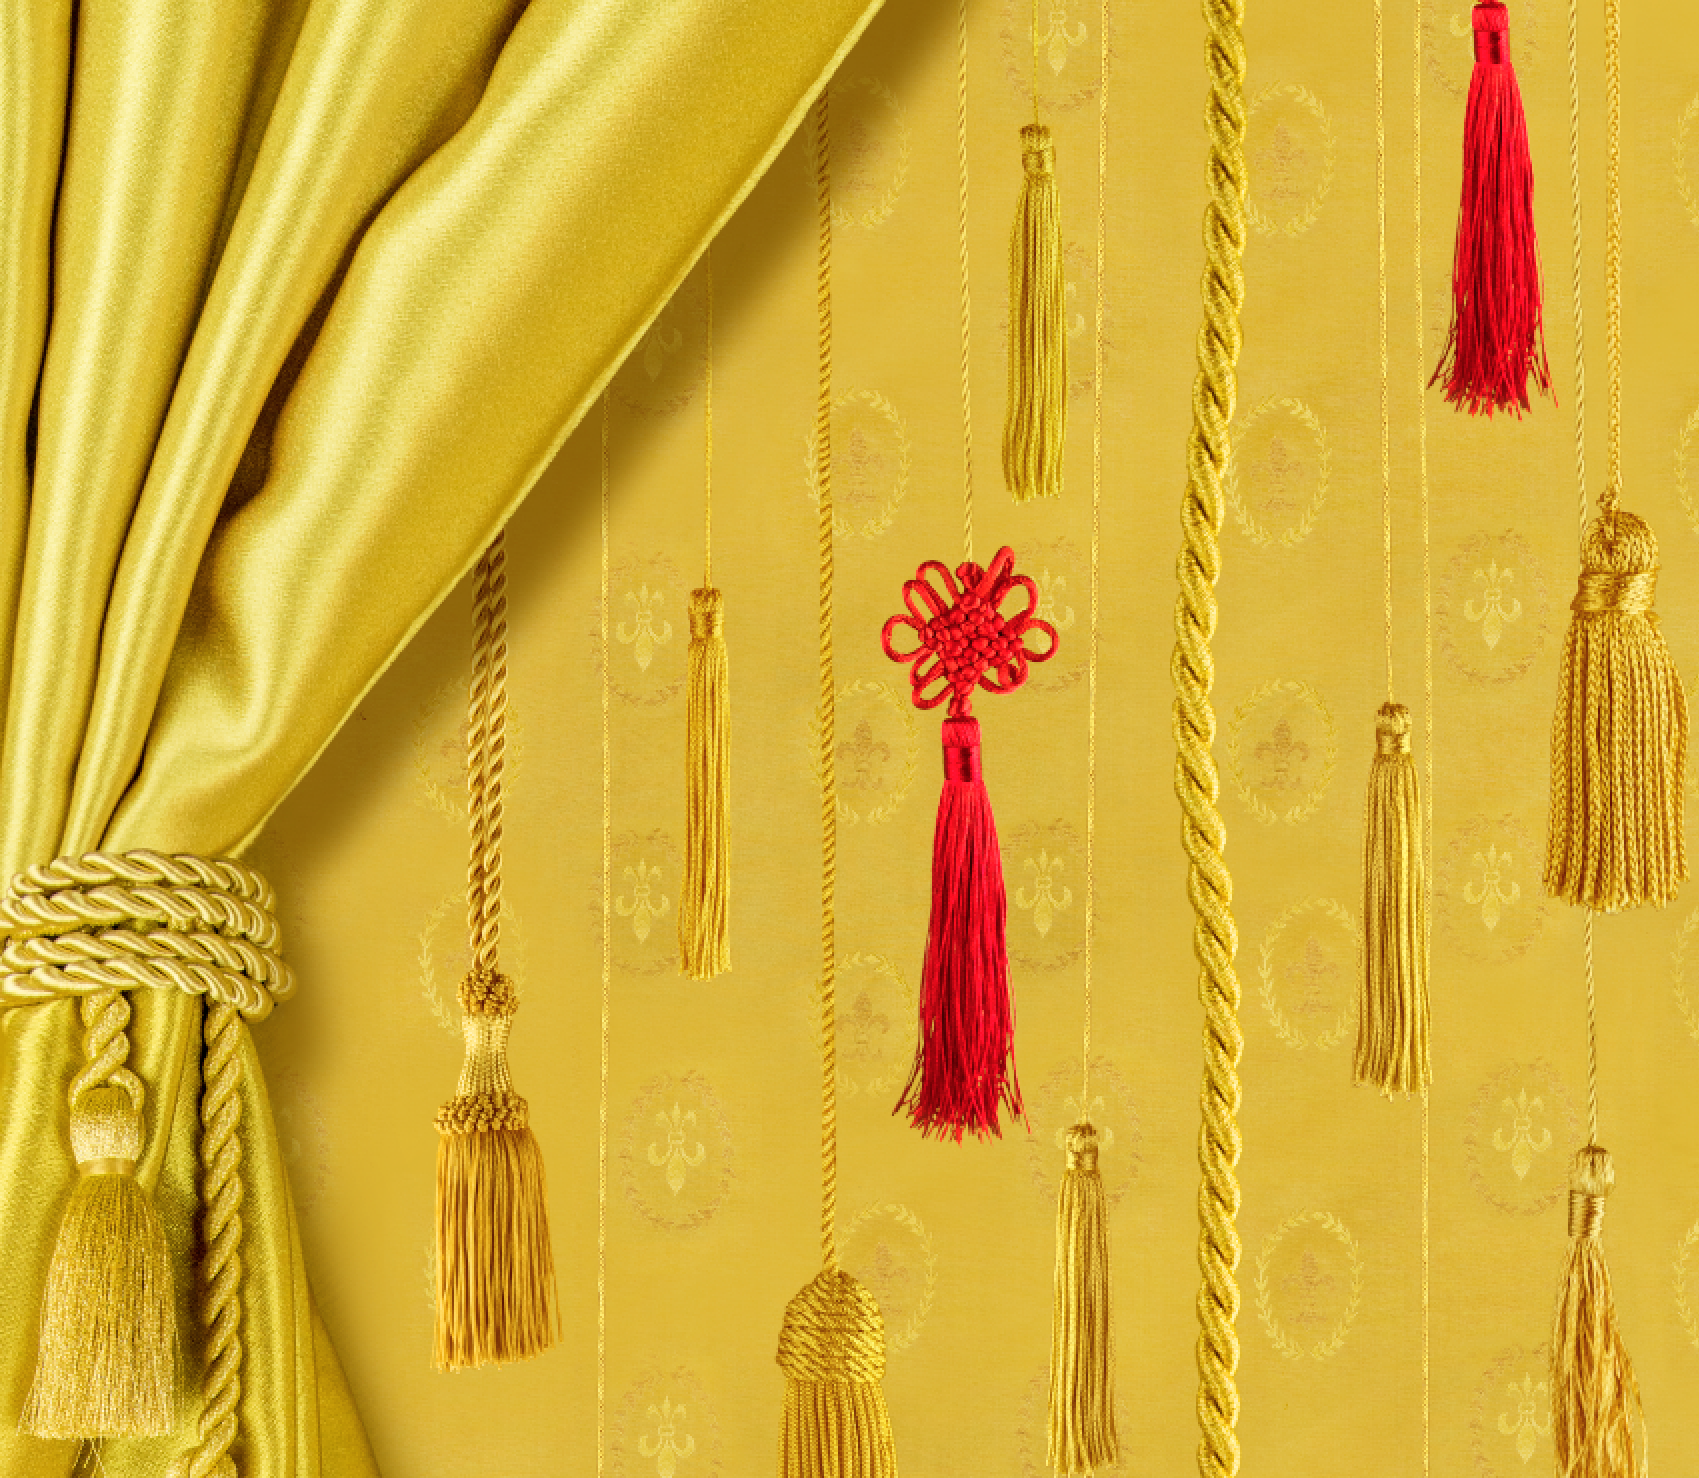 A yellow curtain is pulled to the side by a shiny, gold rope. It reveals eight gold Chinese endless knots and two red Chinese endless knots, which are made from the same rope that is holding the curtain to the side. They are suspended at varying depths and heights.